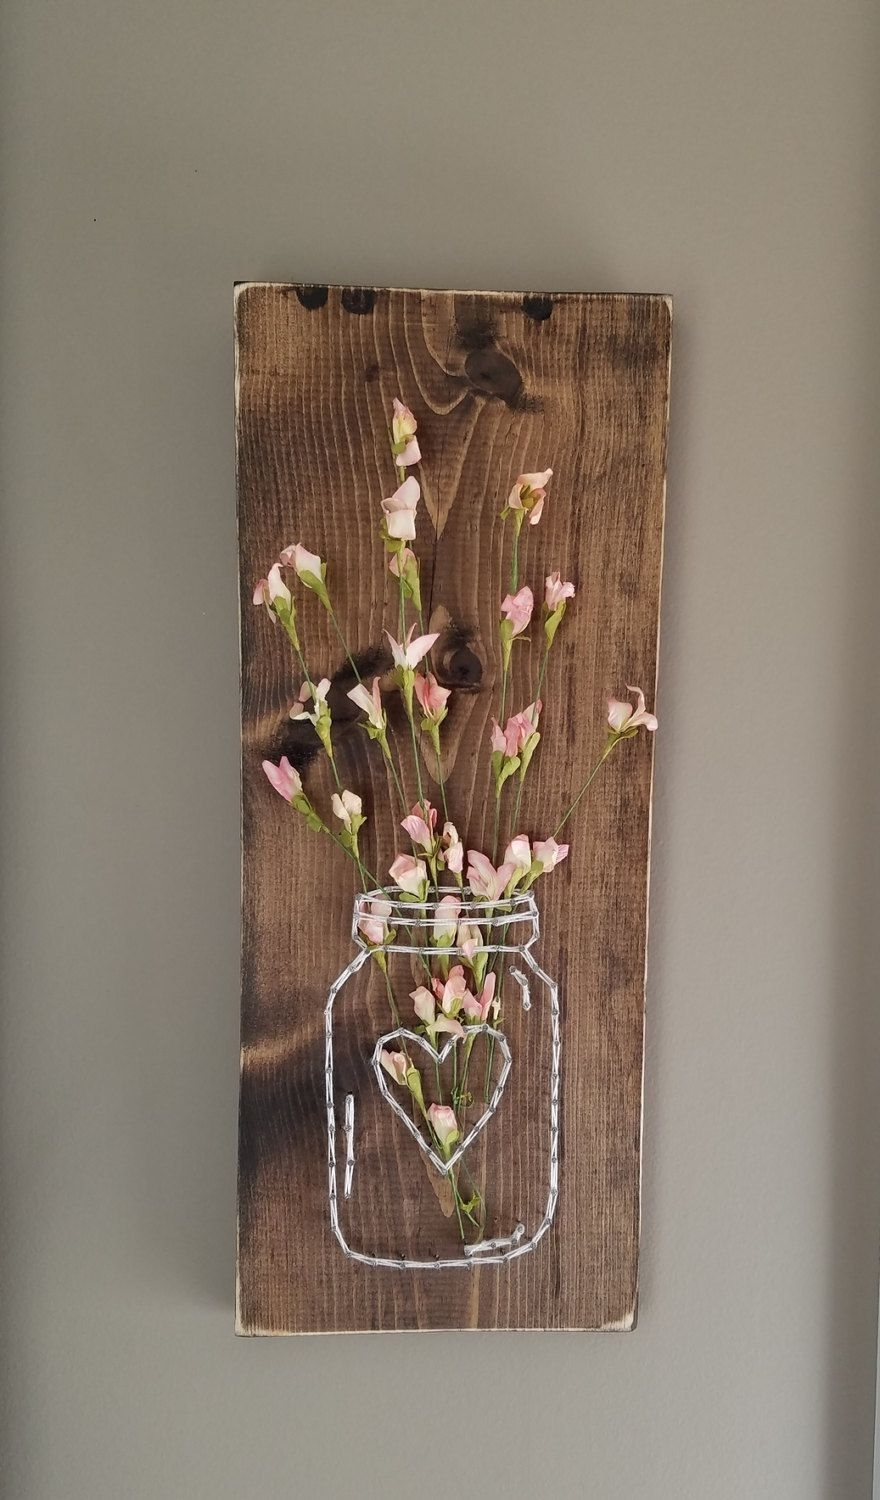 Mason Jar String Art With Artificial Flowers, Wall Art, Wood Wall With Most Up To Date Mason Jar Wall Art (View 5 of 20)